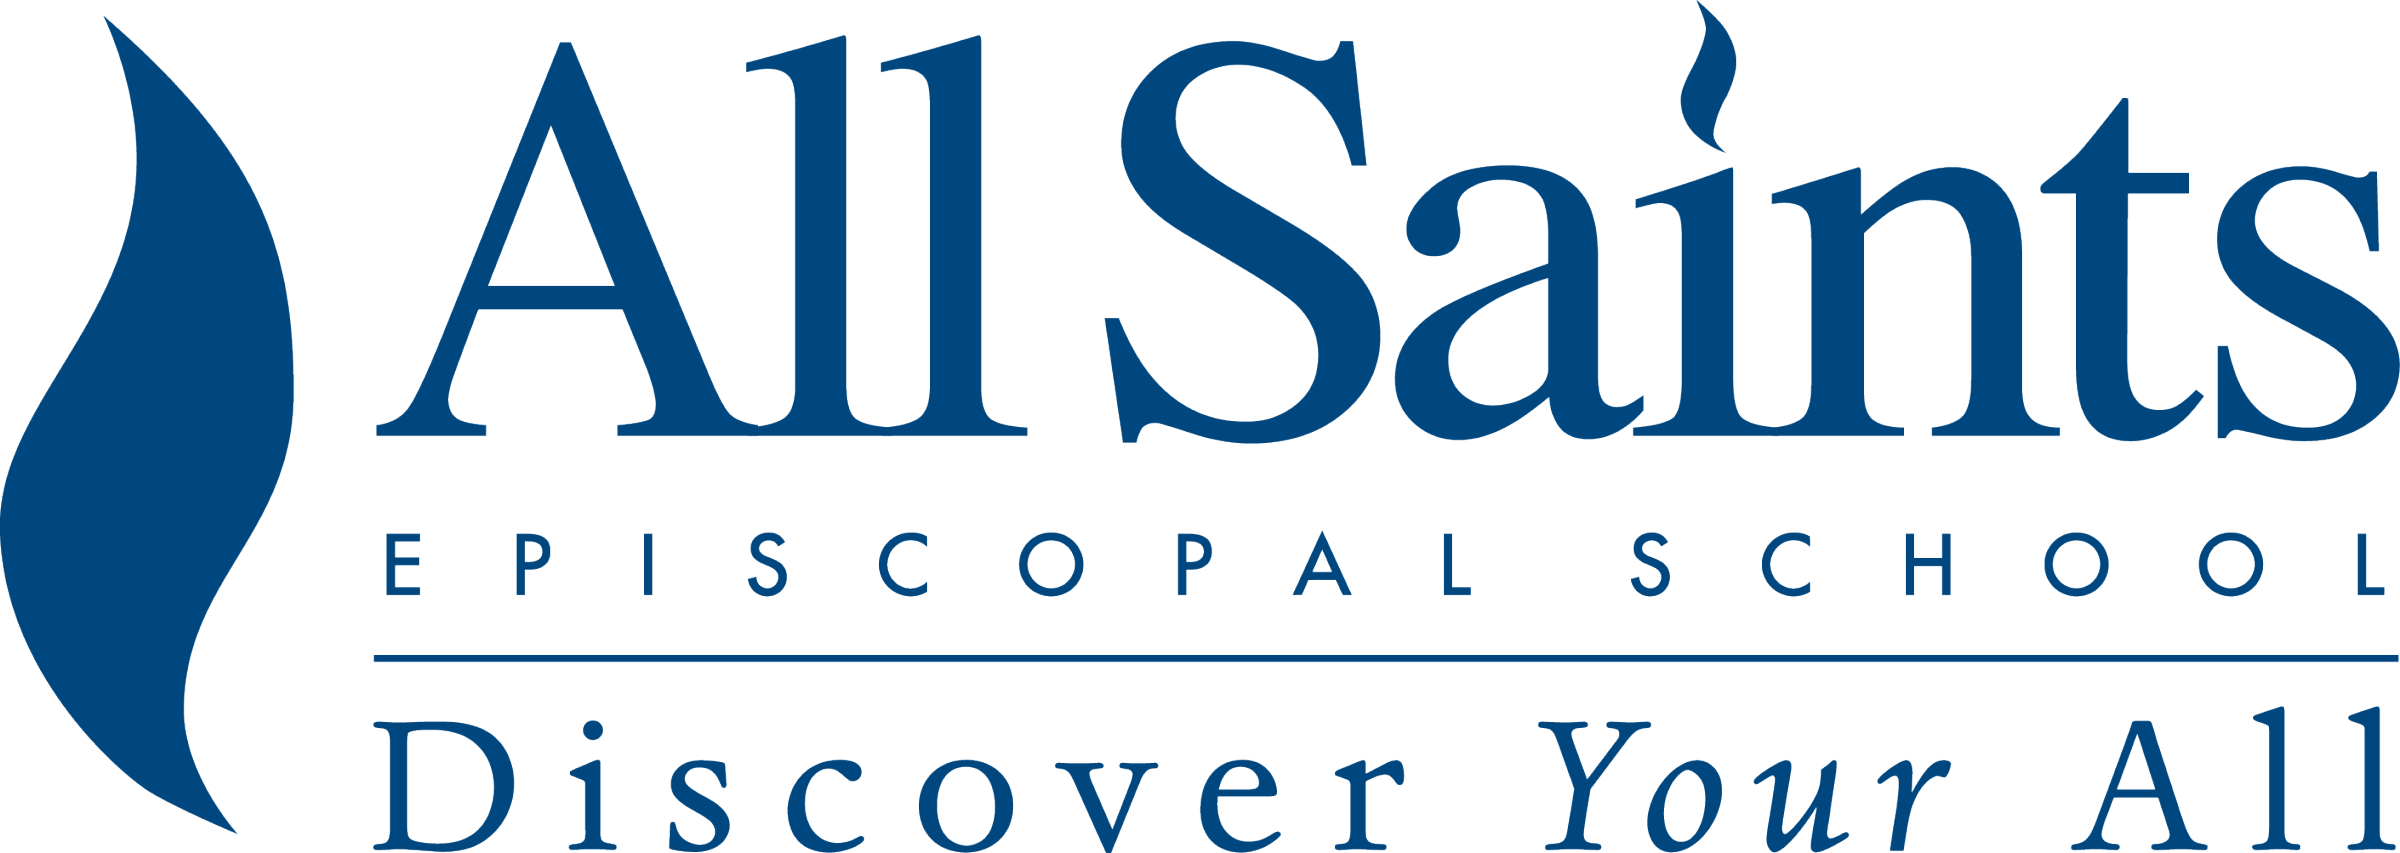 All Saints Episcopal School - Discover Your All